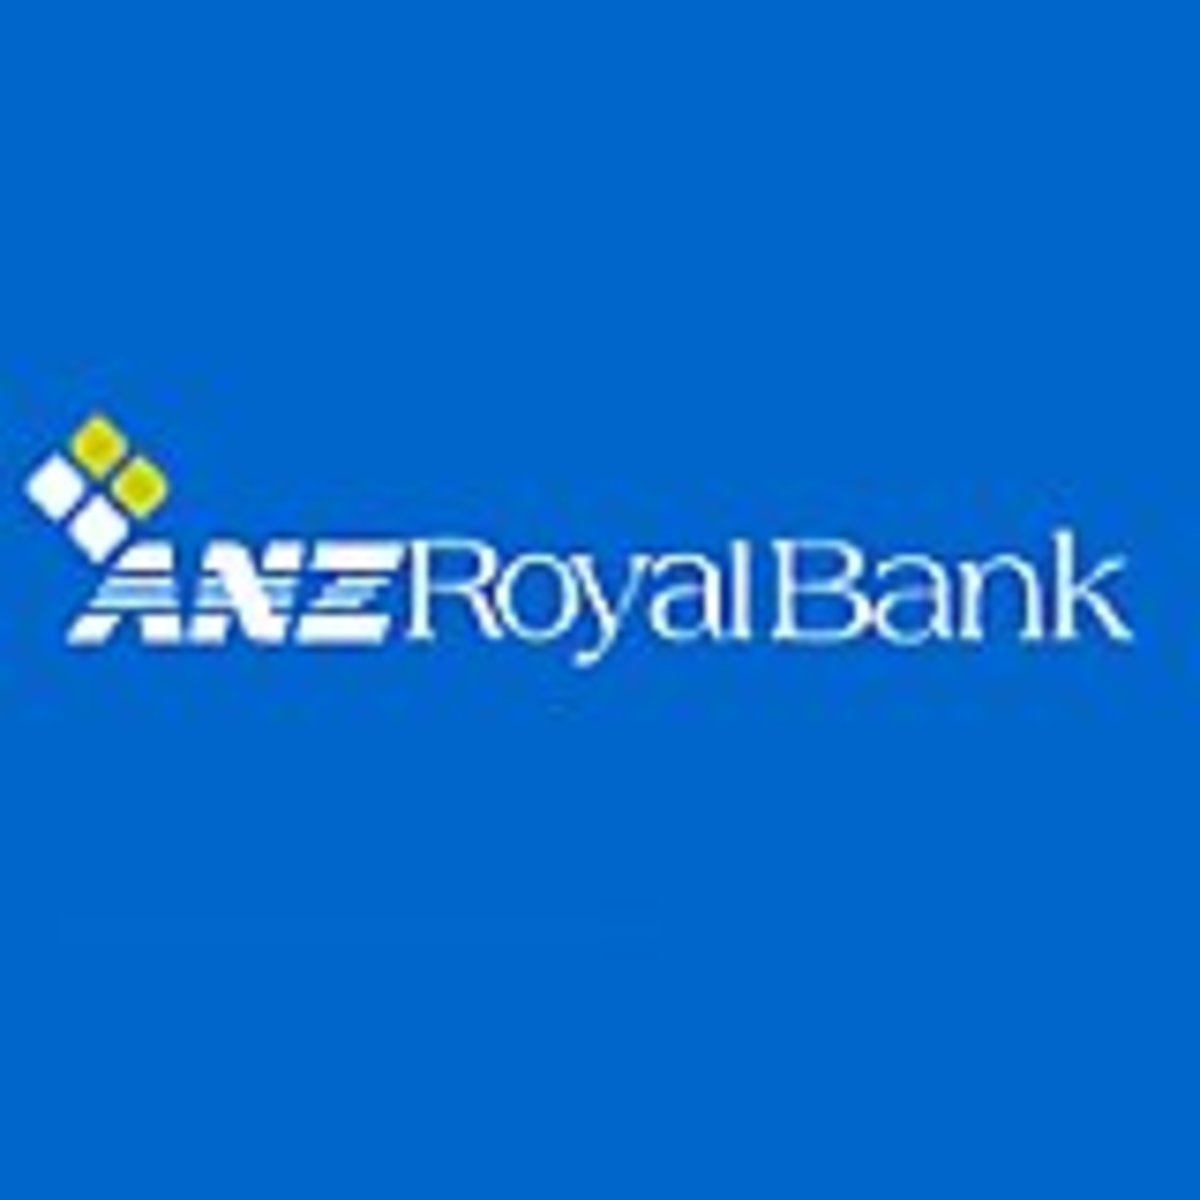 ANZ Bank Logo - Has more ATM locations than any other bank in Cambodia.